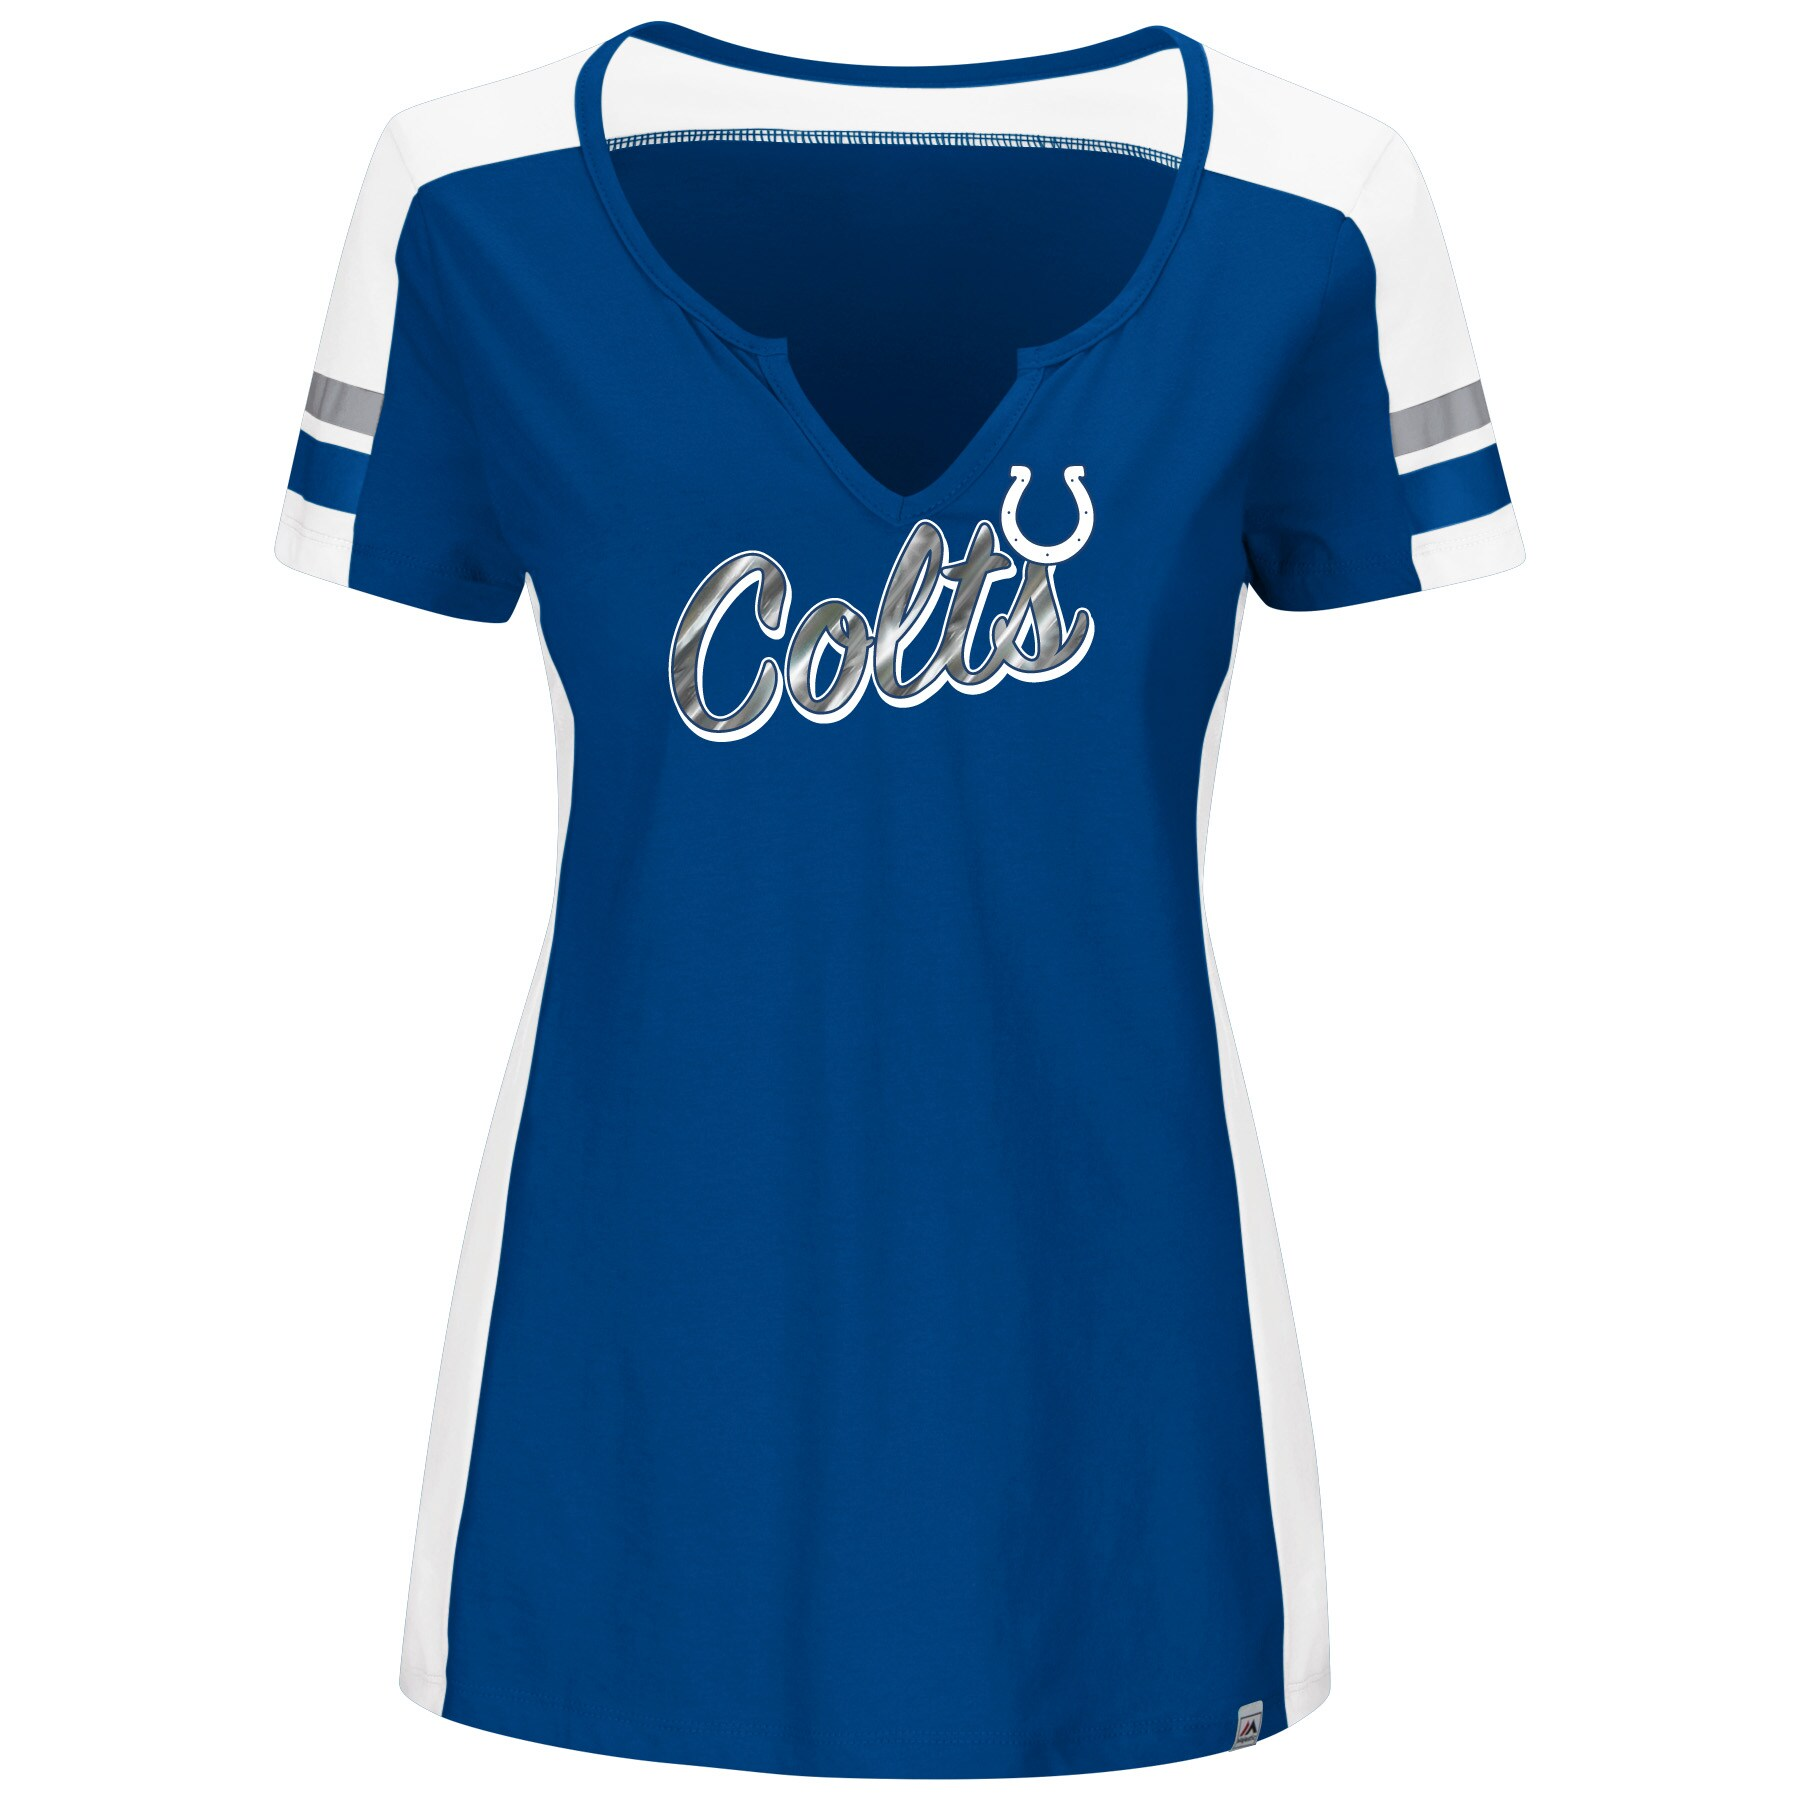 Indianapolis Colts Majestic Women's Pride Playing Notch Neck T-Shirt - Royal/White